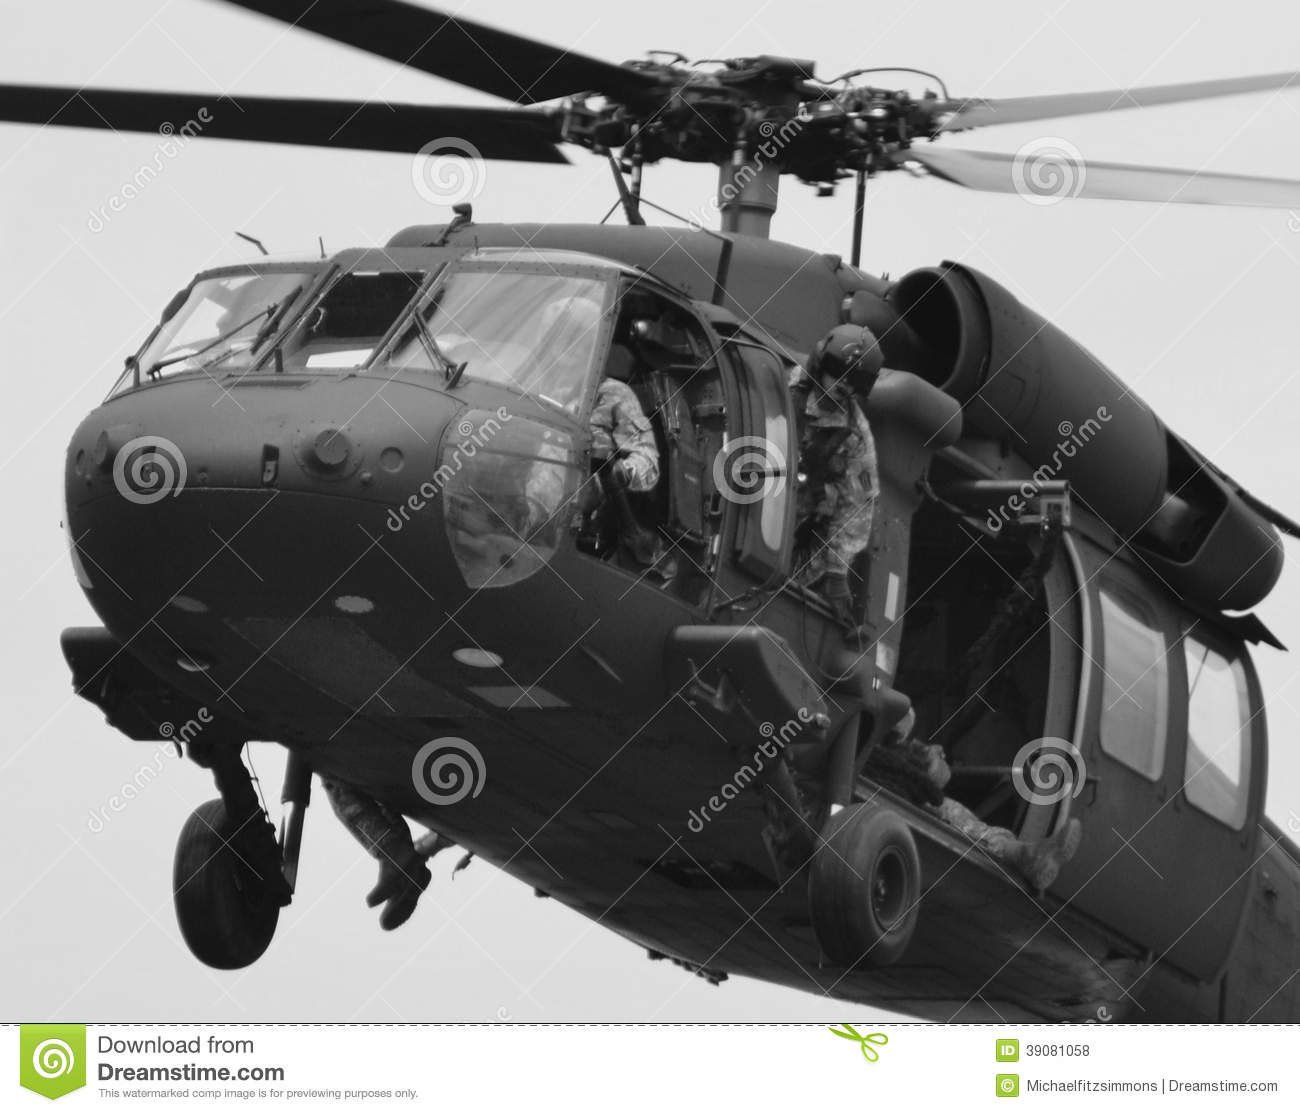 Uh 60 clipart picture freeuse library UH-60 Blackhawk Editorial Stock Photo - Image: 39081058 picture freeuse library